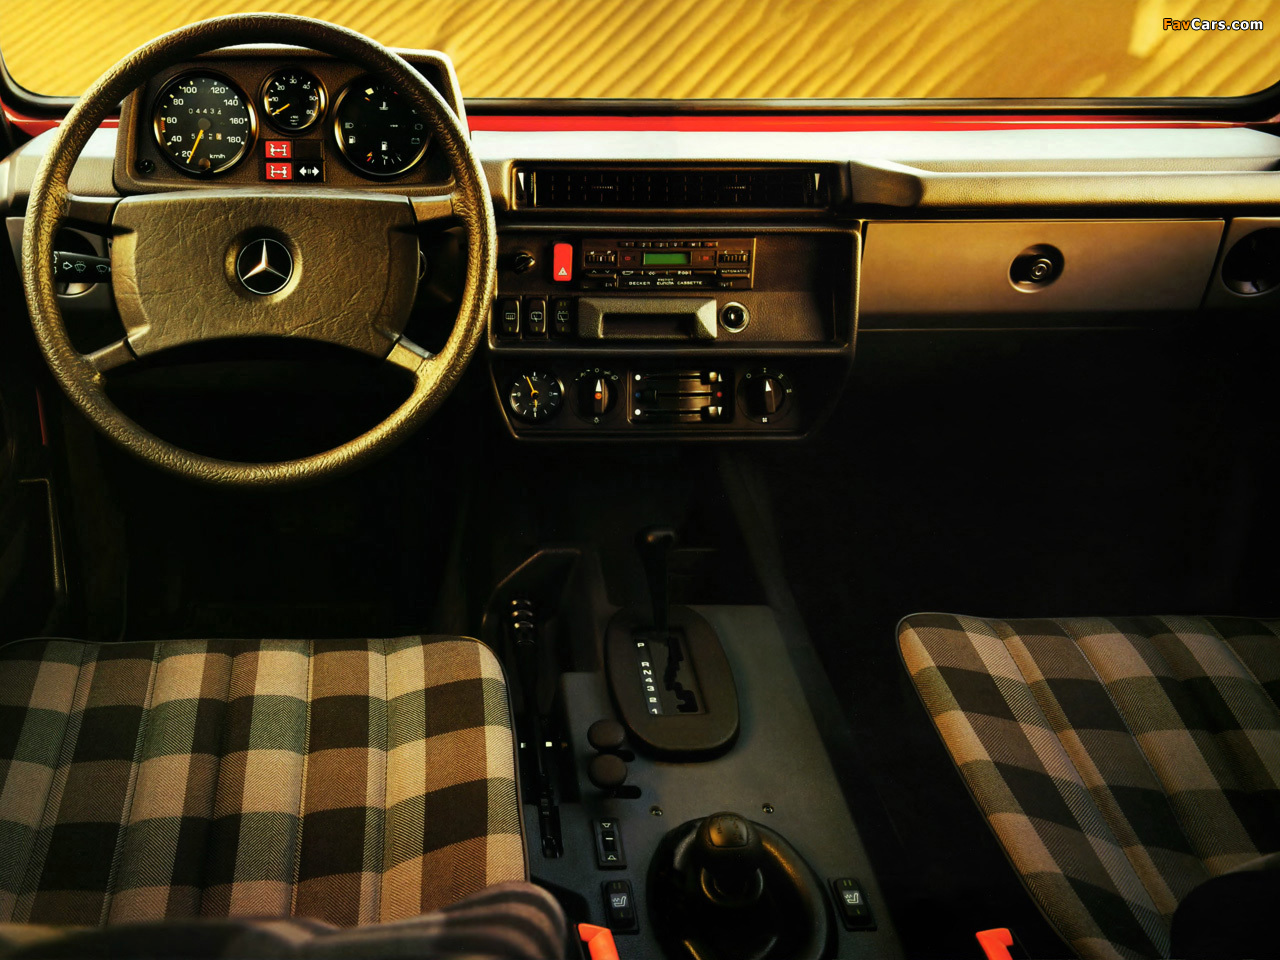 Mercedes benz 280 ge w460 1979 90 wallpapers 1280x960 for Mercedes benz 280 ge